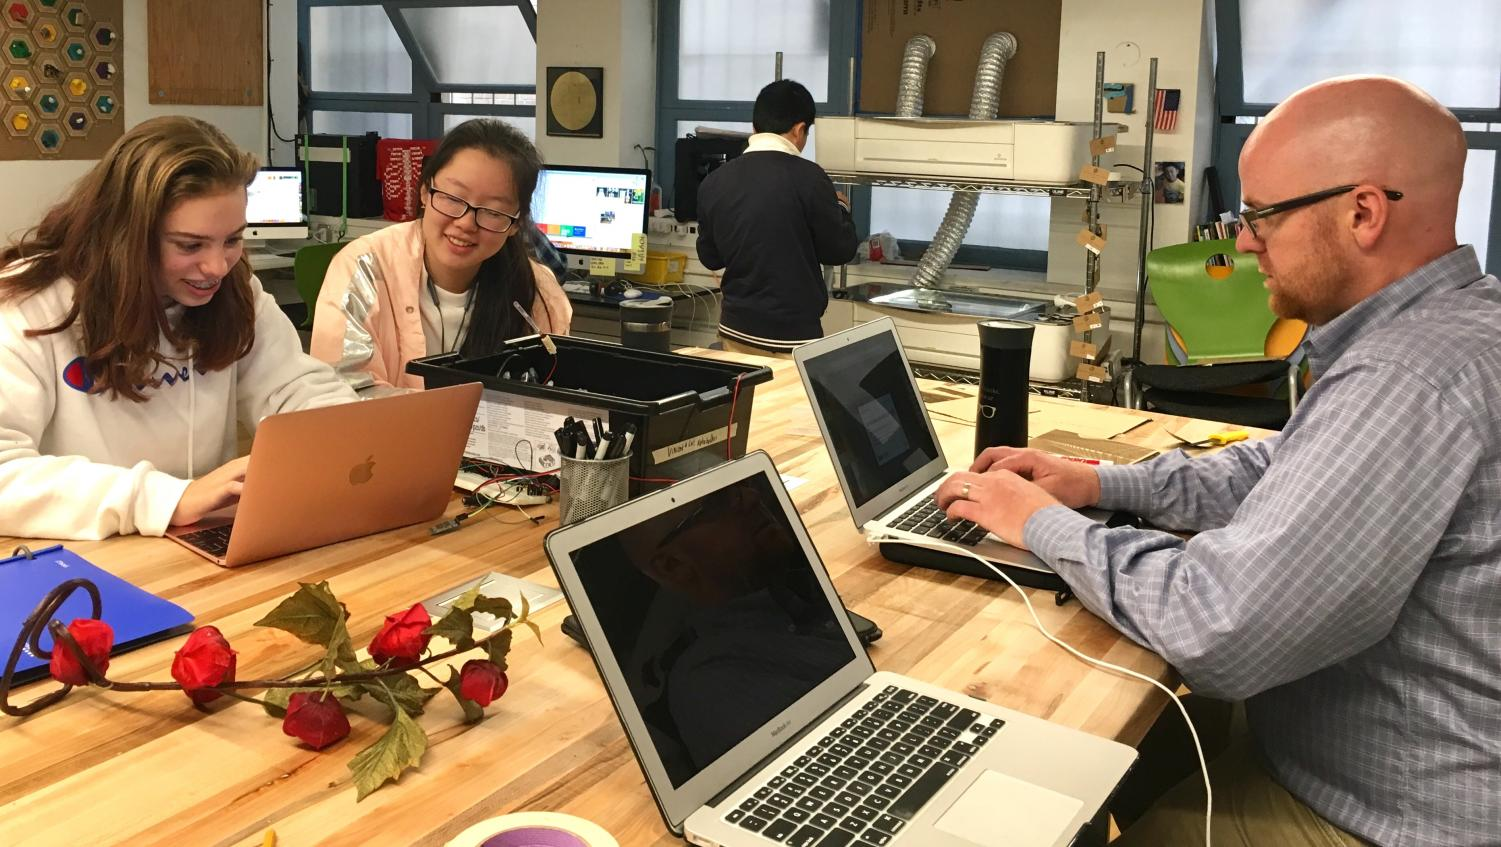 Club head Zoe Hinks and junior Michelle Wang discuss plans for the Innobotics Club with the club moderator during a lunch meeting in the Unkefer Spark Studio. The Clubs Assembly will be held on Monday.